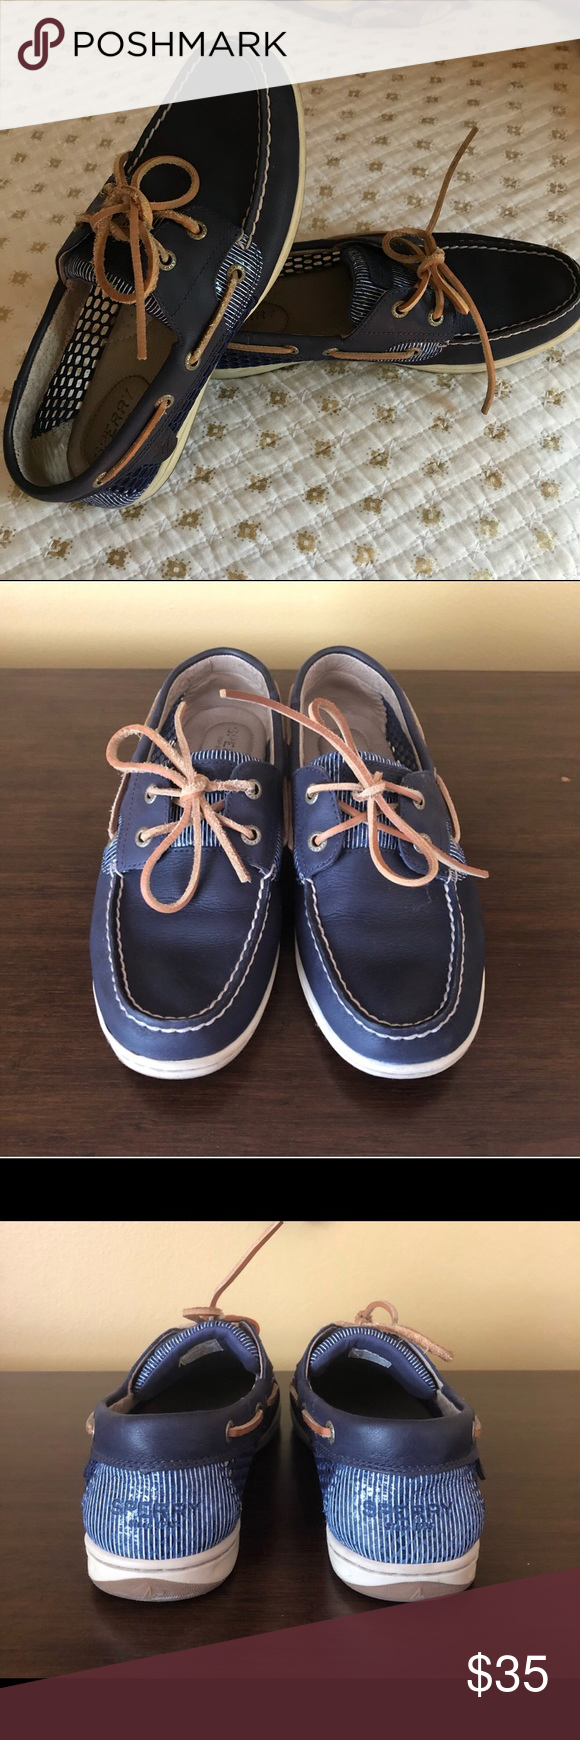 3e79d6c976 EUC Sperry Koifish Core boat shoes Size 8 Excellent used condition. Sperry  navy boat shoes with lots of life left in them. originally purchased on  Posh.